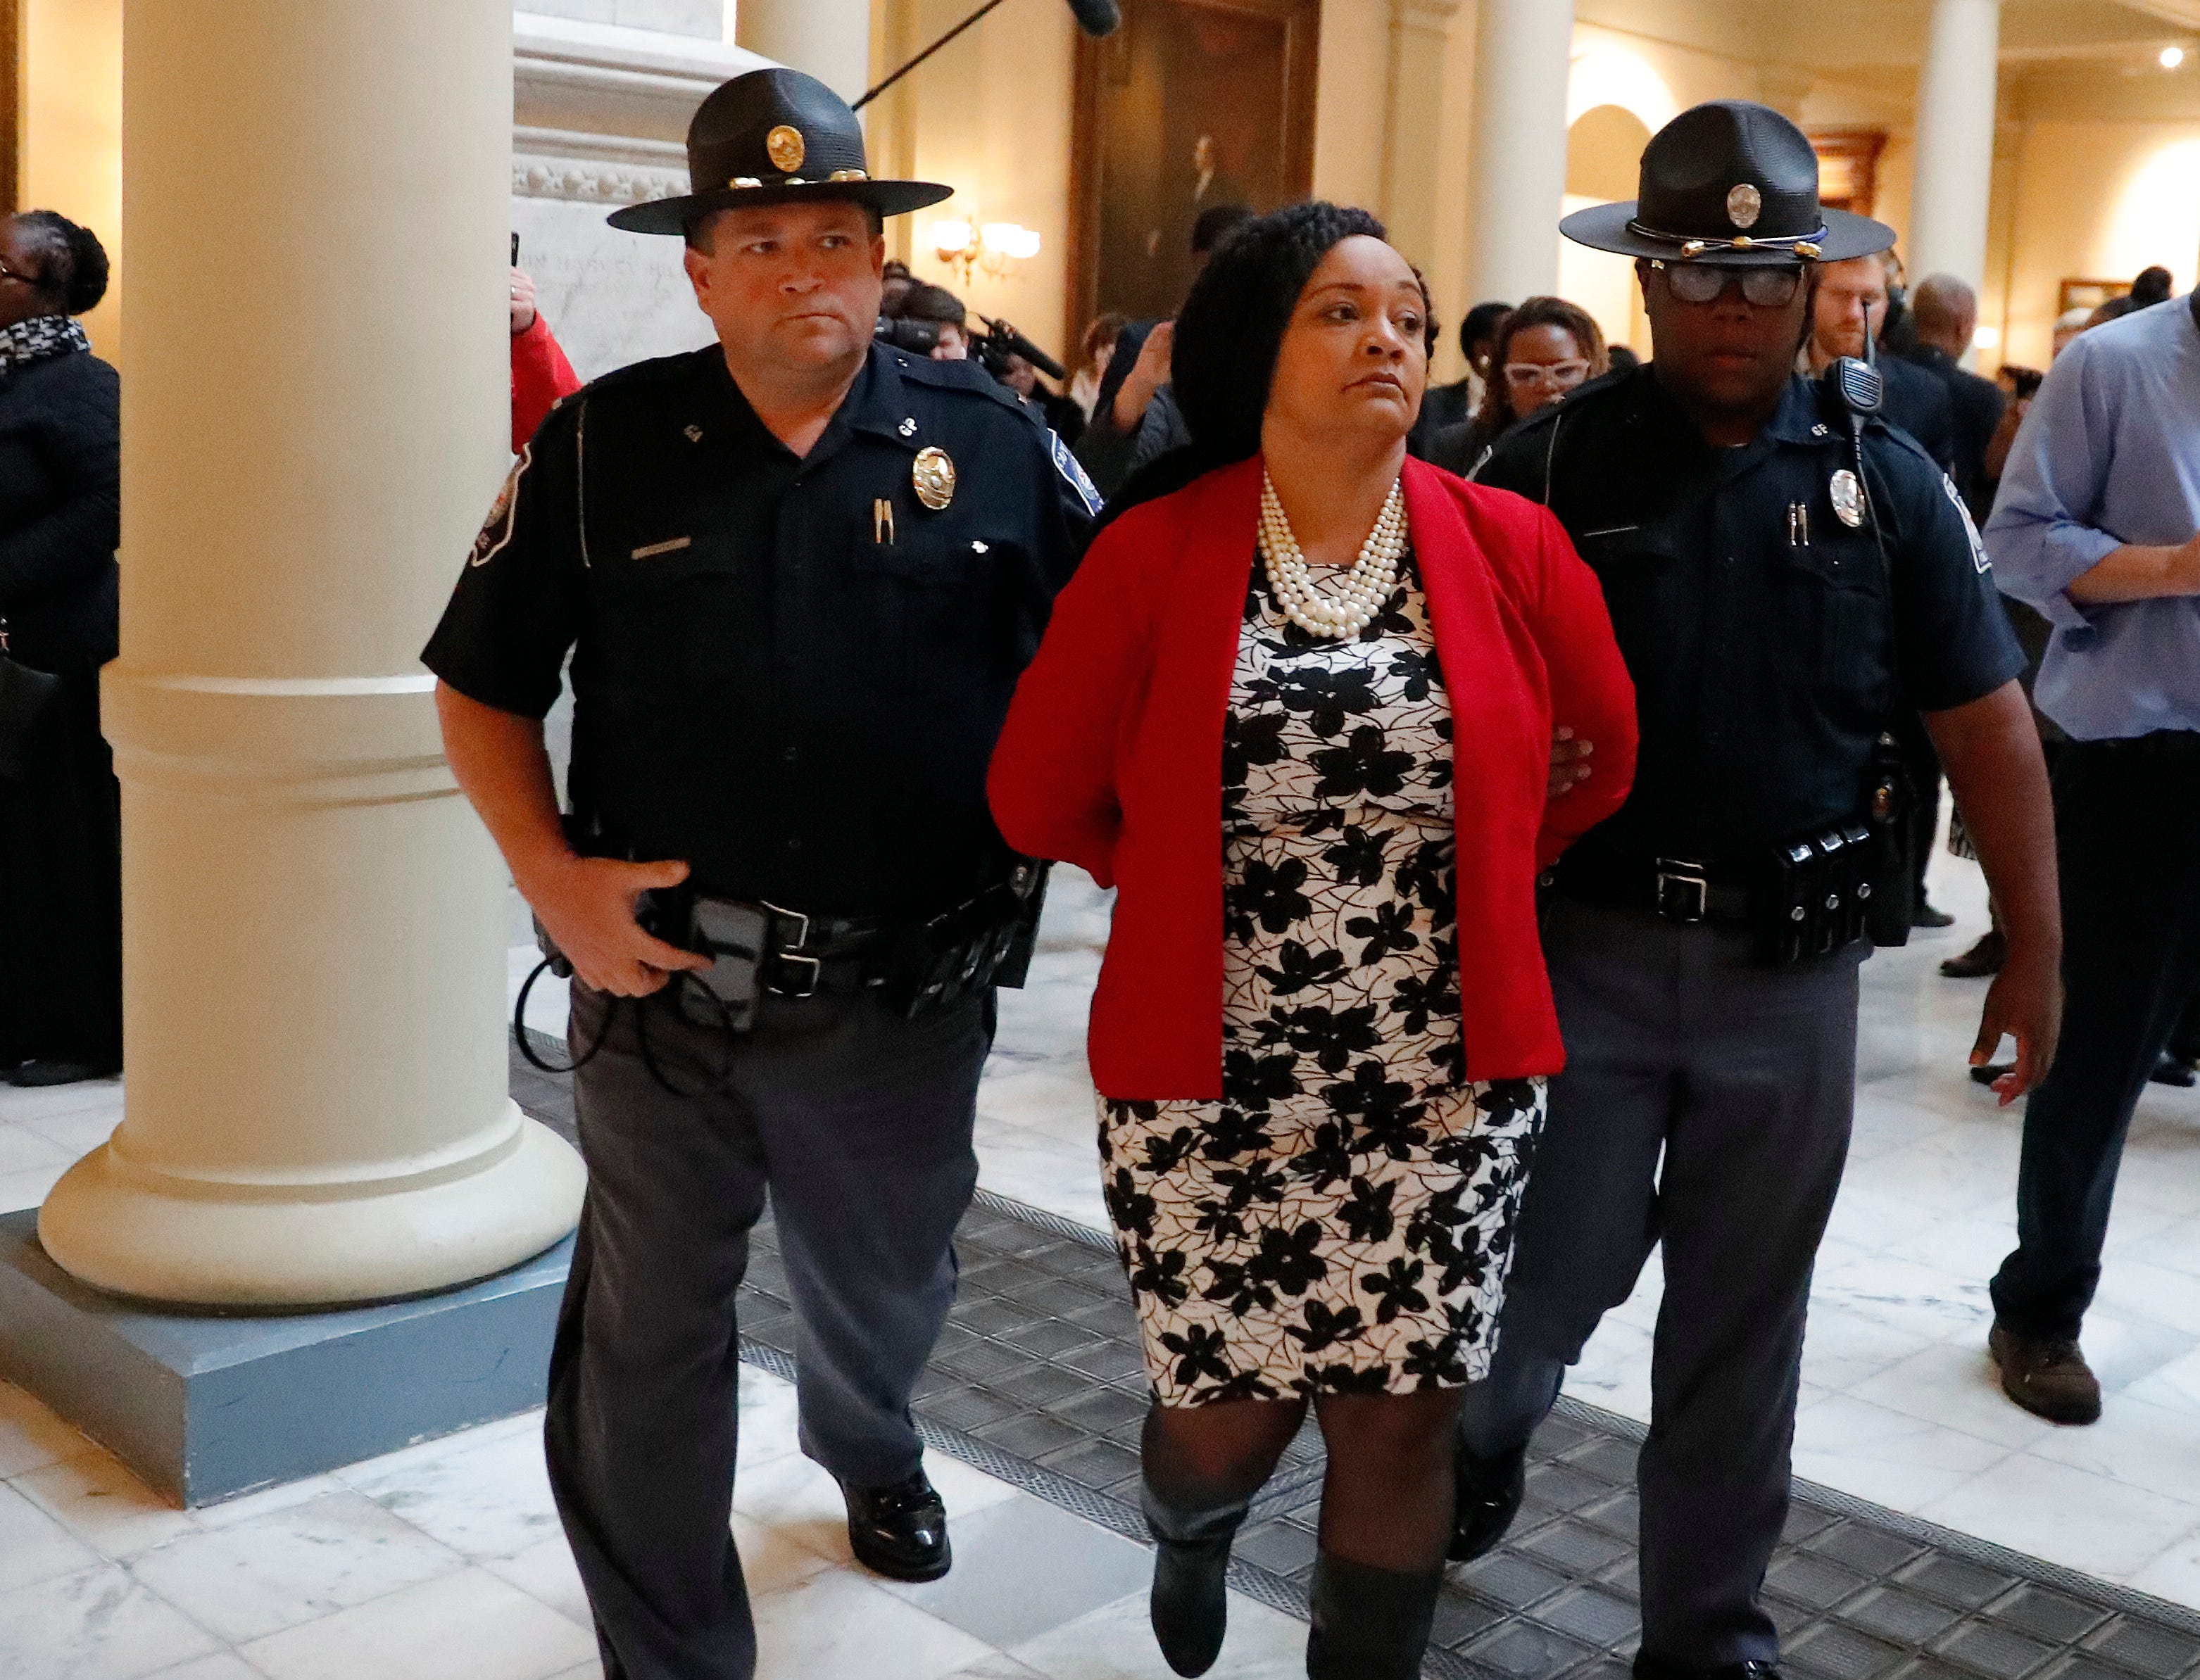 Sen. Nikema Williams, D-Atlanta, is arrested by capitol police during a protest over election ballot counts in the rotunda of the state capitol building Tuesday, Nov. 13, 2018, in Atlanta.